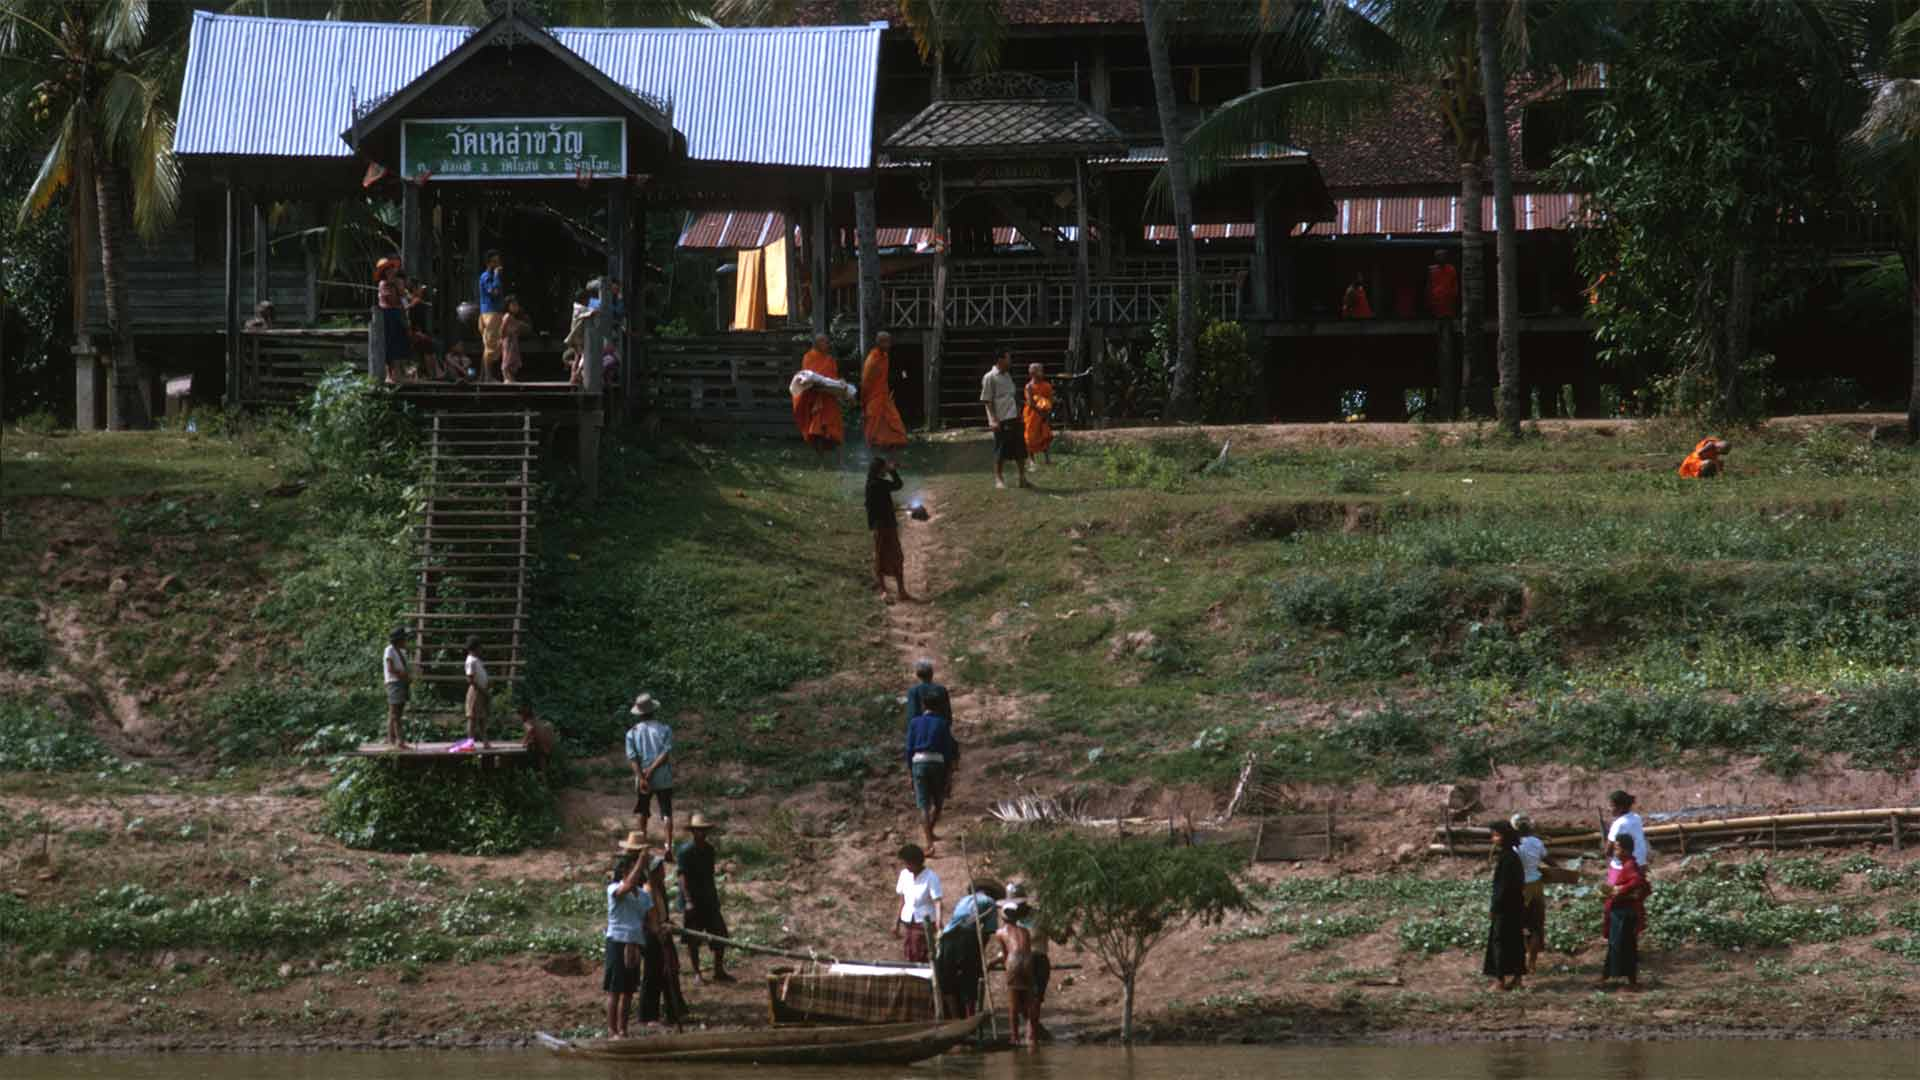 People scattered on a hillside, A coffin sits in a raft on the waterfront.